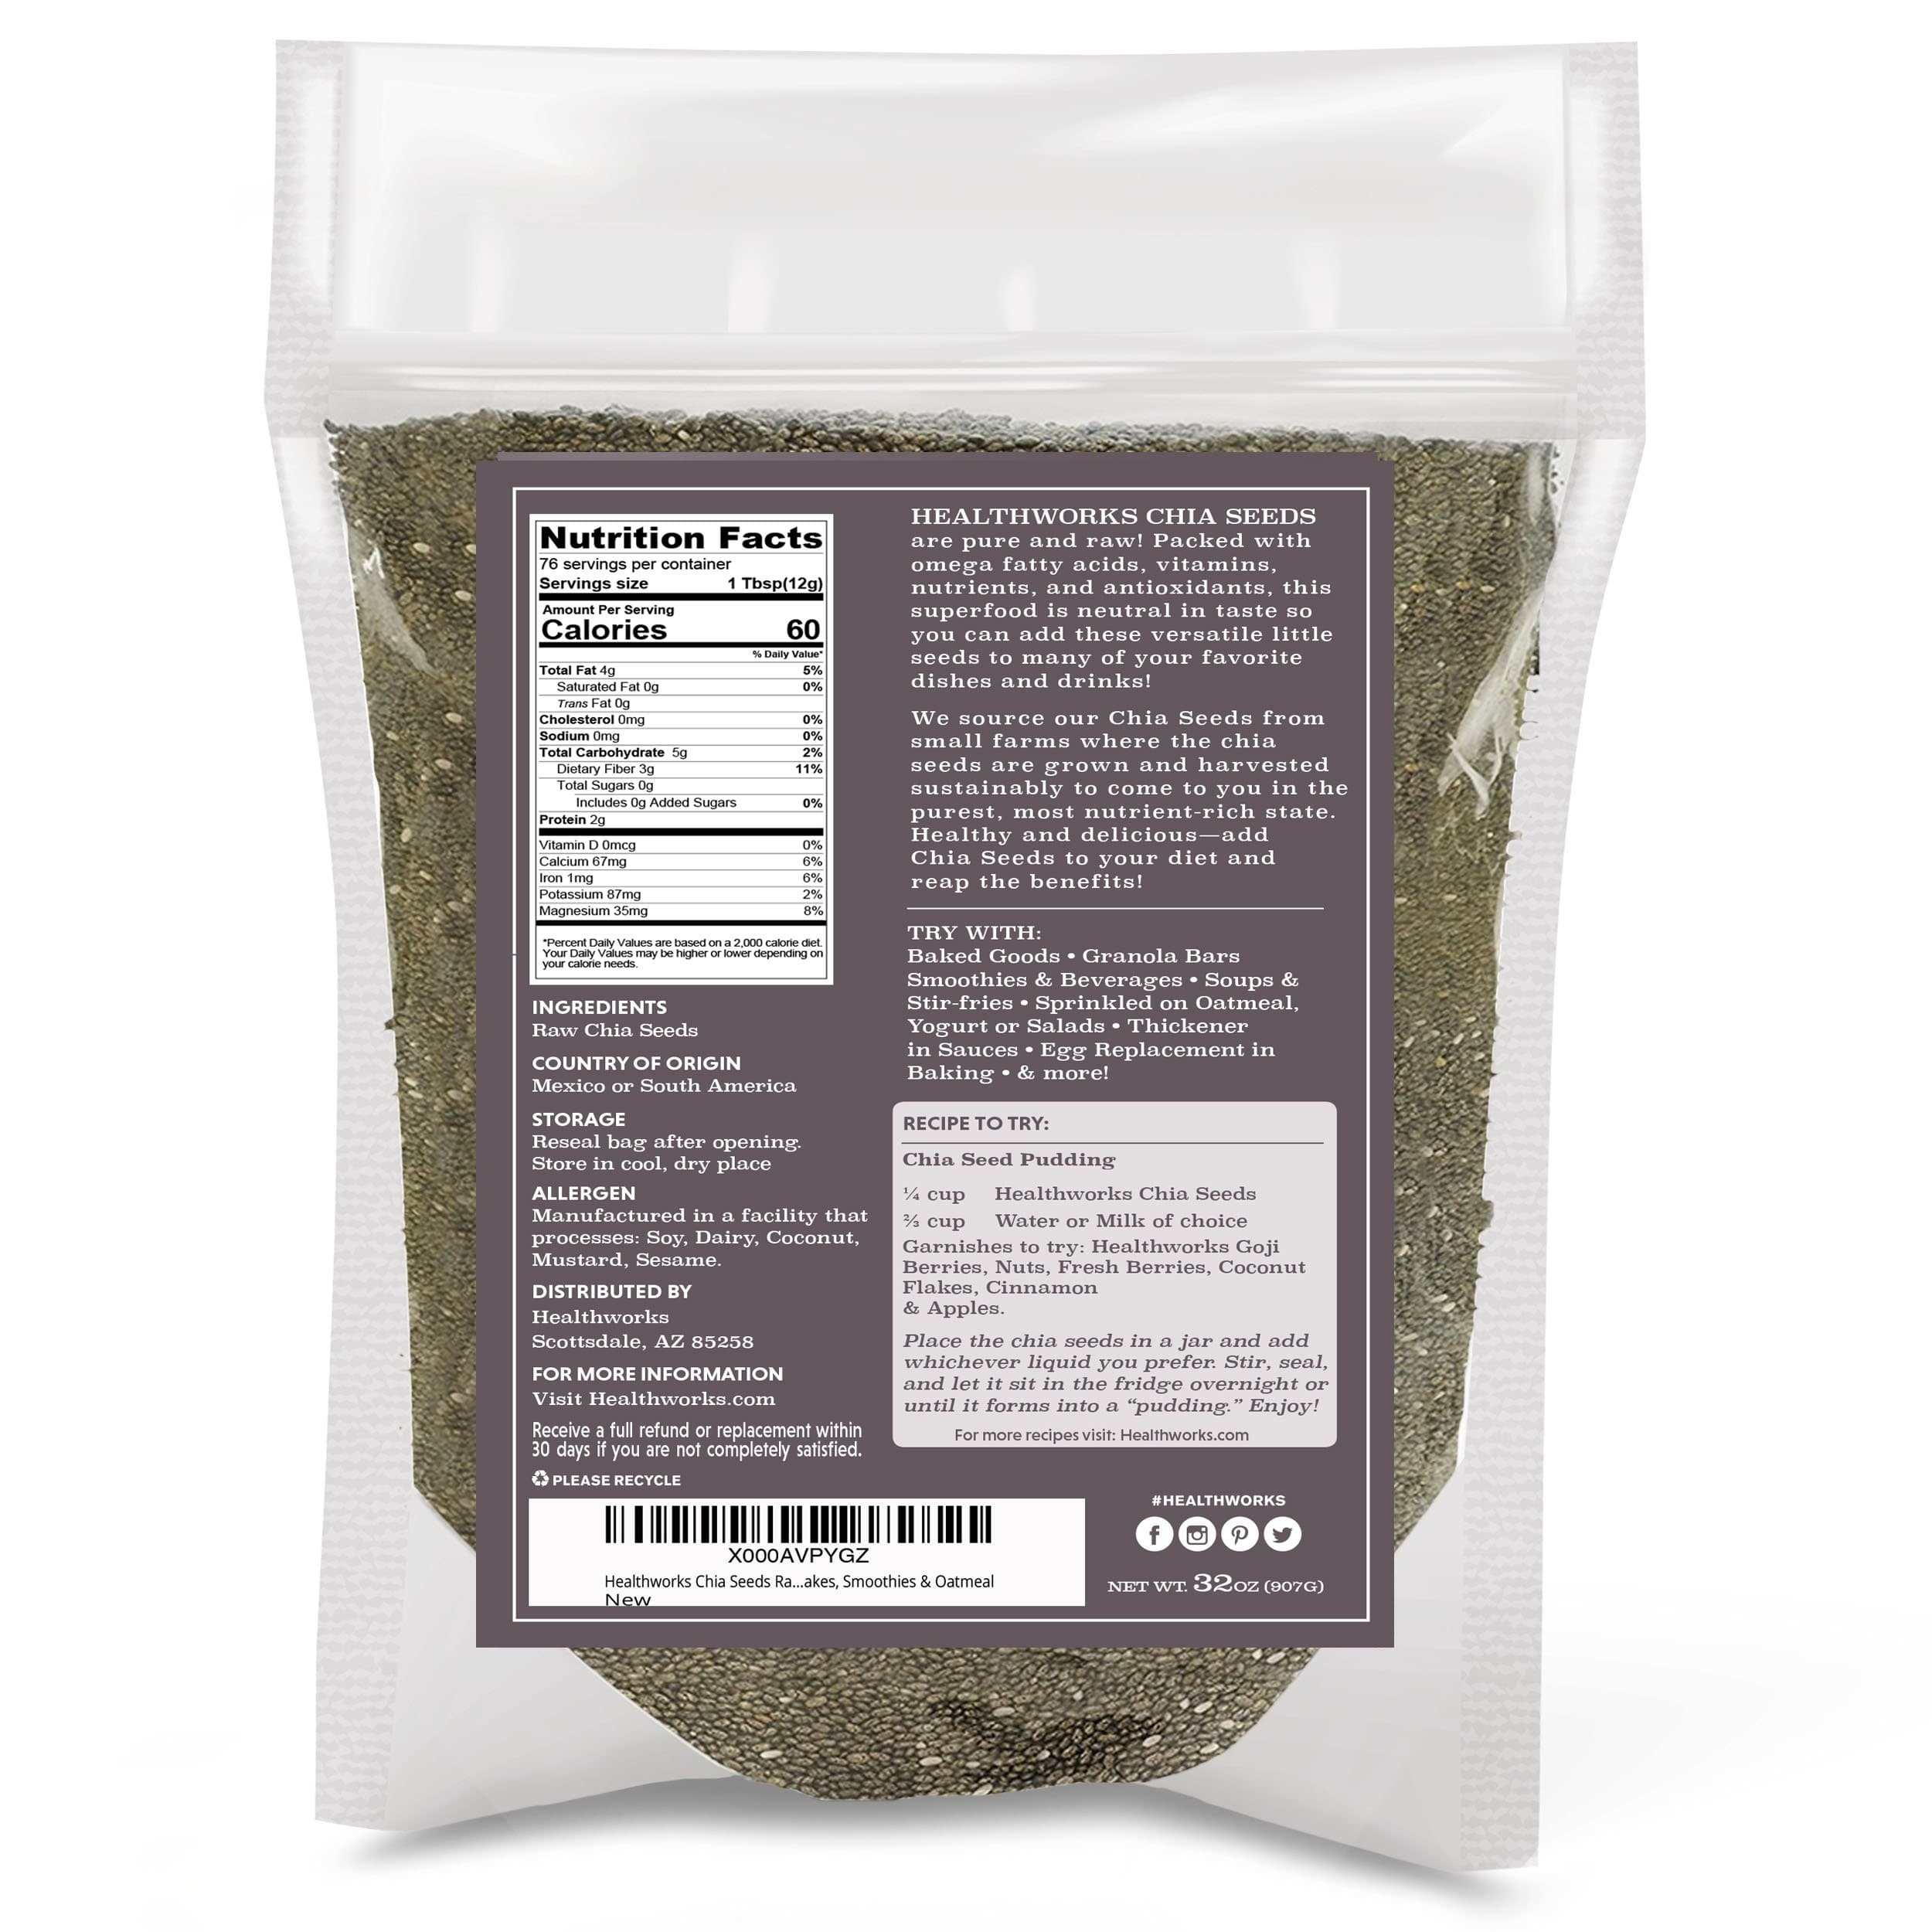 Healthworks Black Chia Seeds Raw Pesticide-Free, 4lb (2 2lb Packs) - Healthworks Superfood Organic